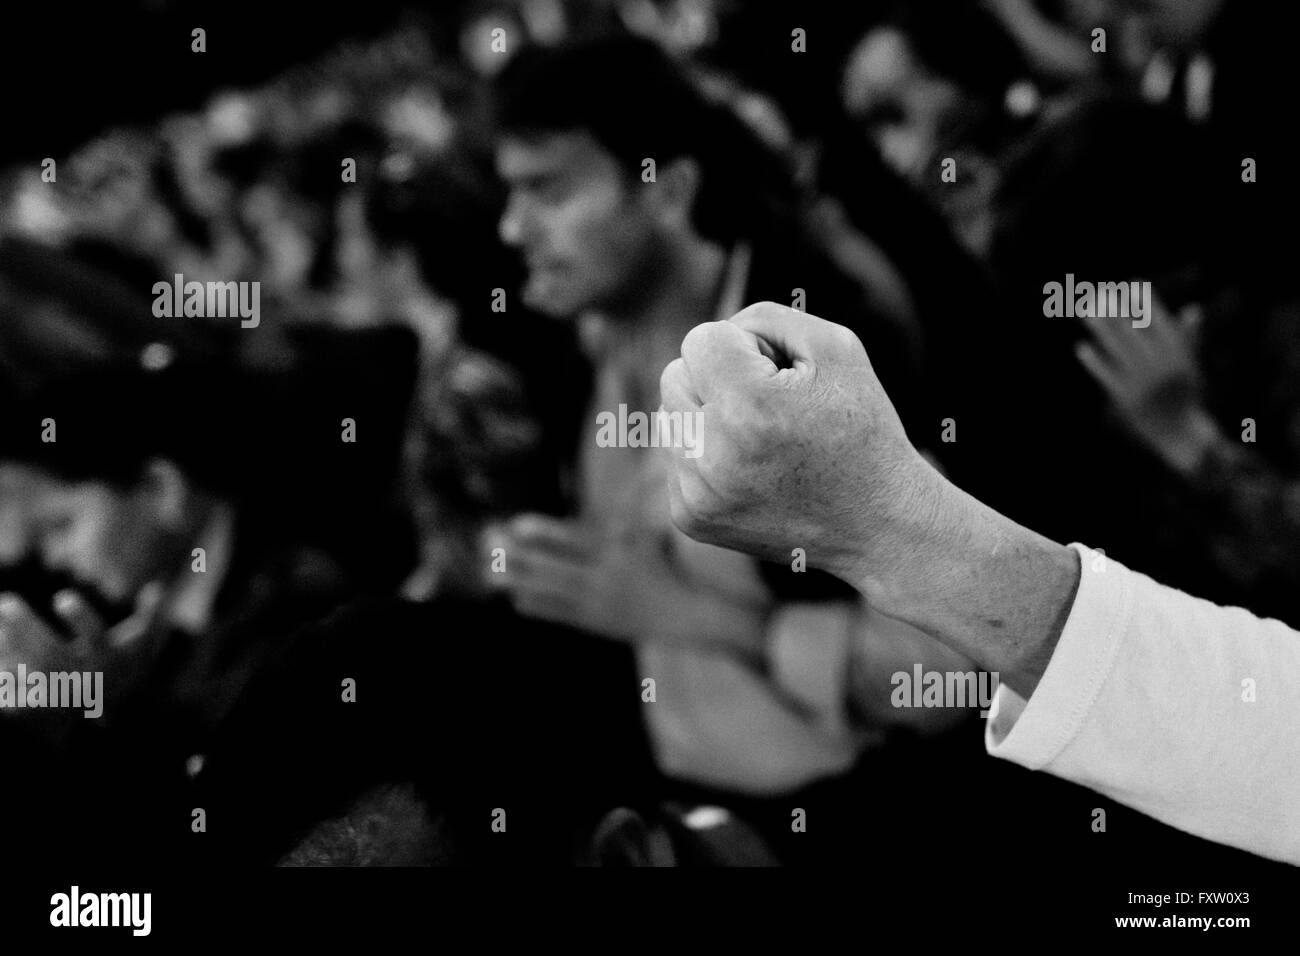 A raised fist of a Christian believer is seen during the religious healing ritual performed by pastors in Bogota, - Stock Image